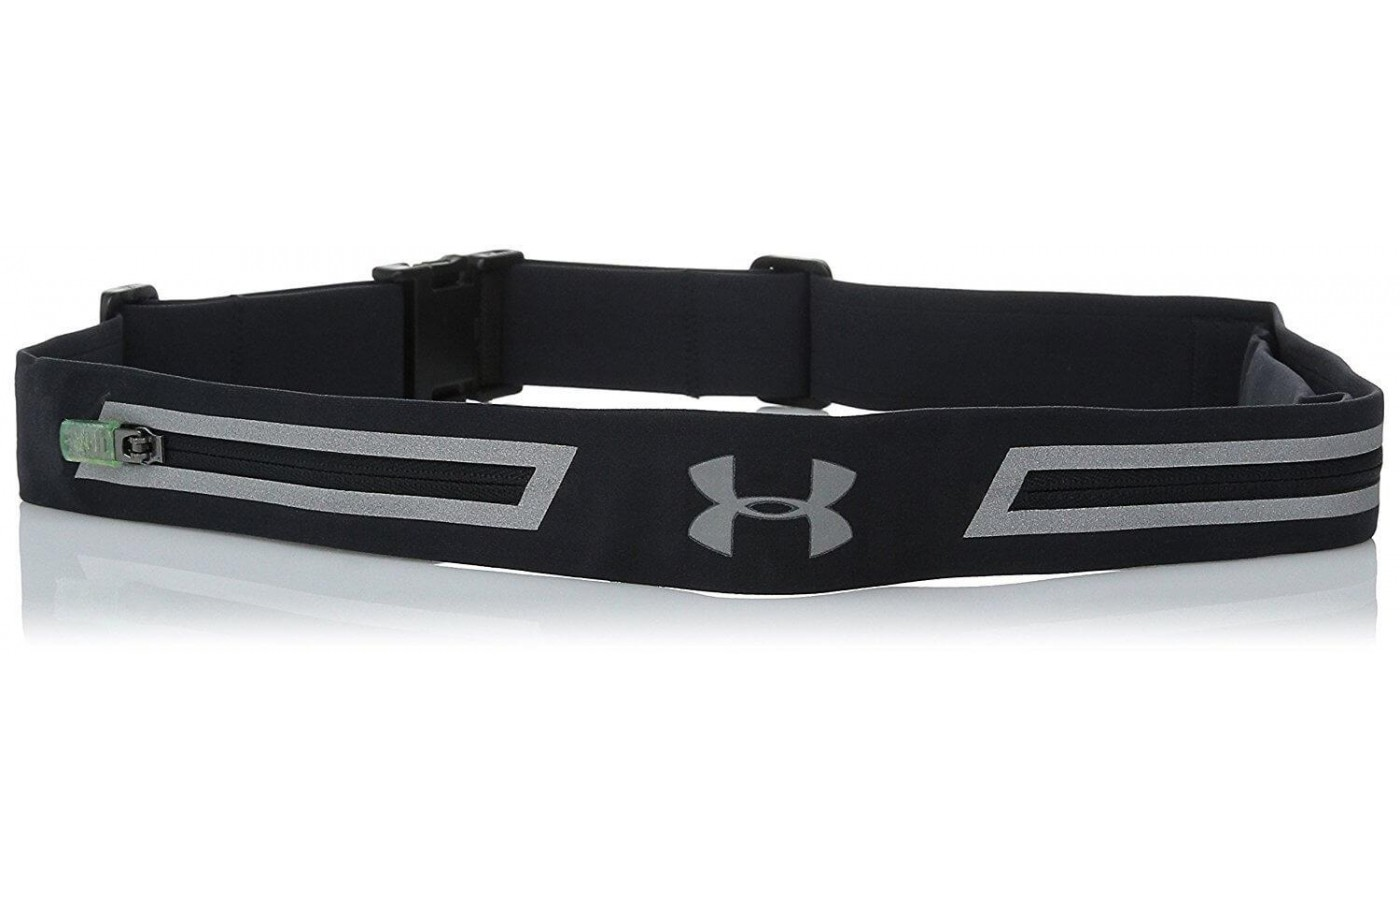 Under Armour Run Belt Black